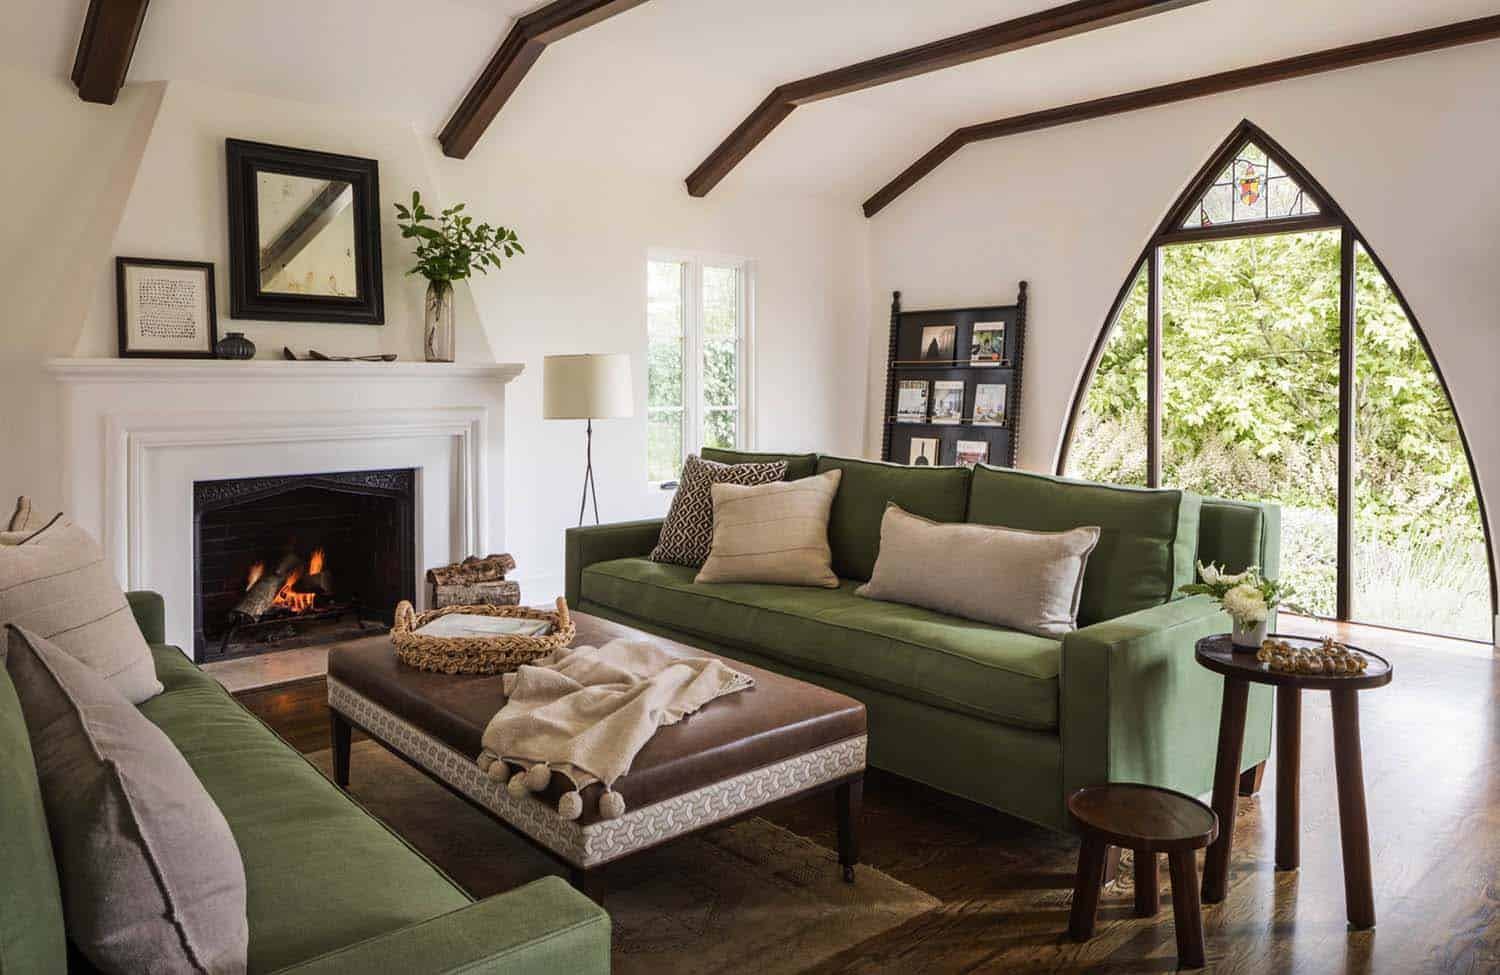 Charming Mediterranean style home with heritage in Northern California